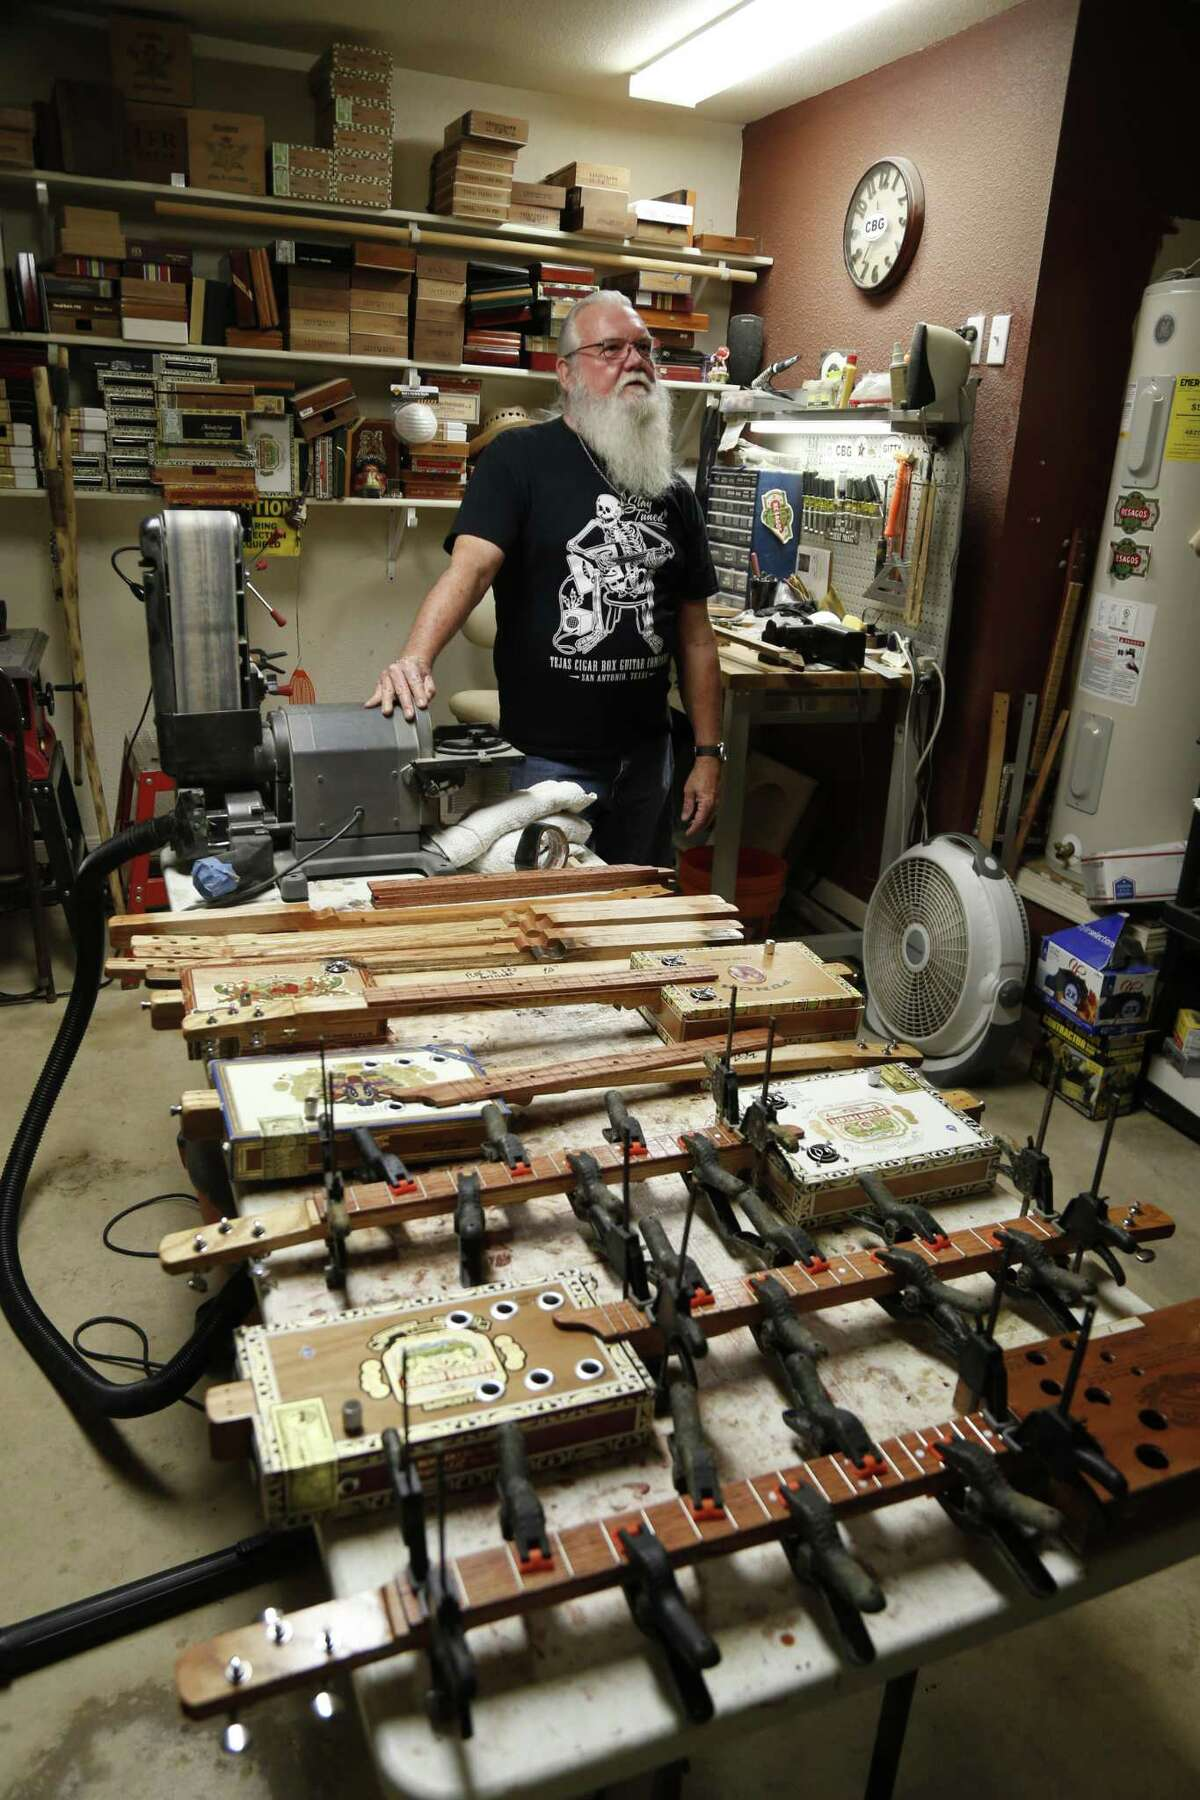 Rehfeld is busy making cigar box guitars in preparation for the upcoming Texas Folklife Festival. He can make five or six guitars a week, each one taking 10 to 12 hours to complete - although he makes them in batches on a sort of homemade production line.